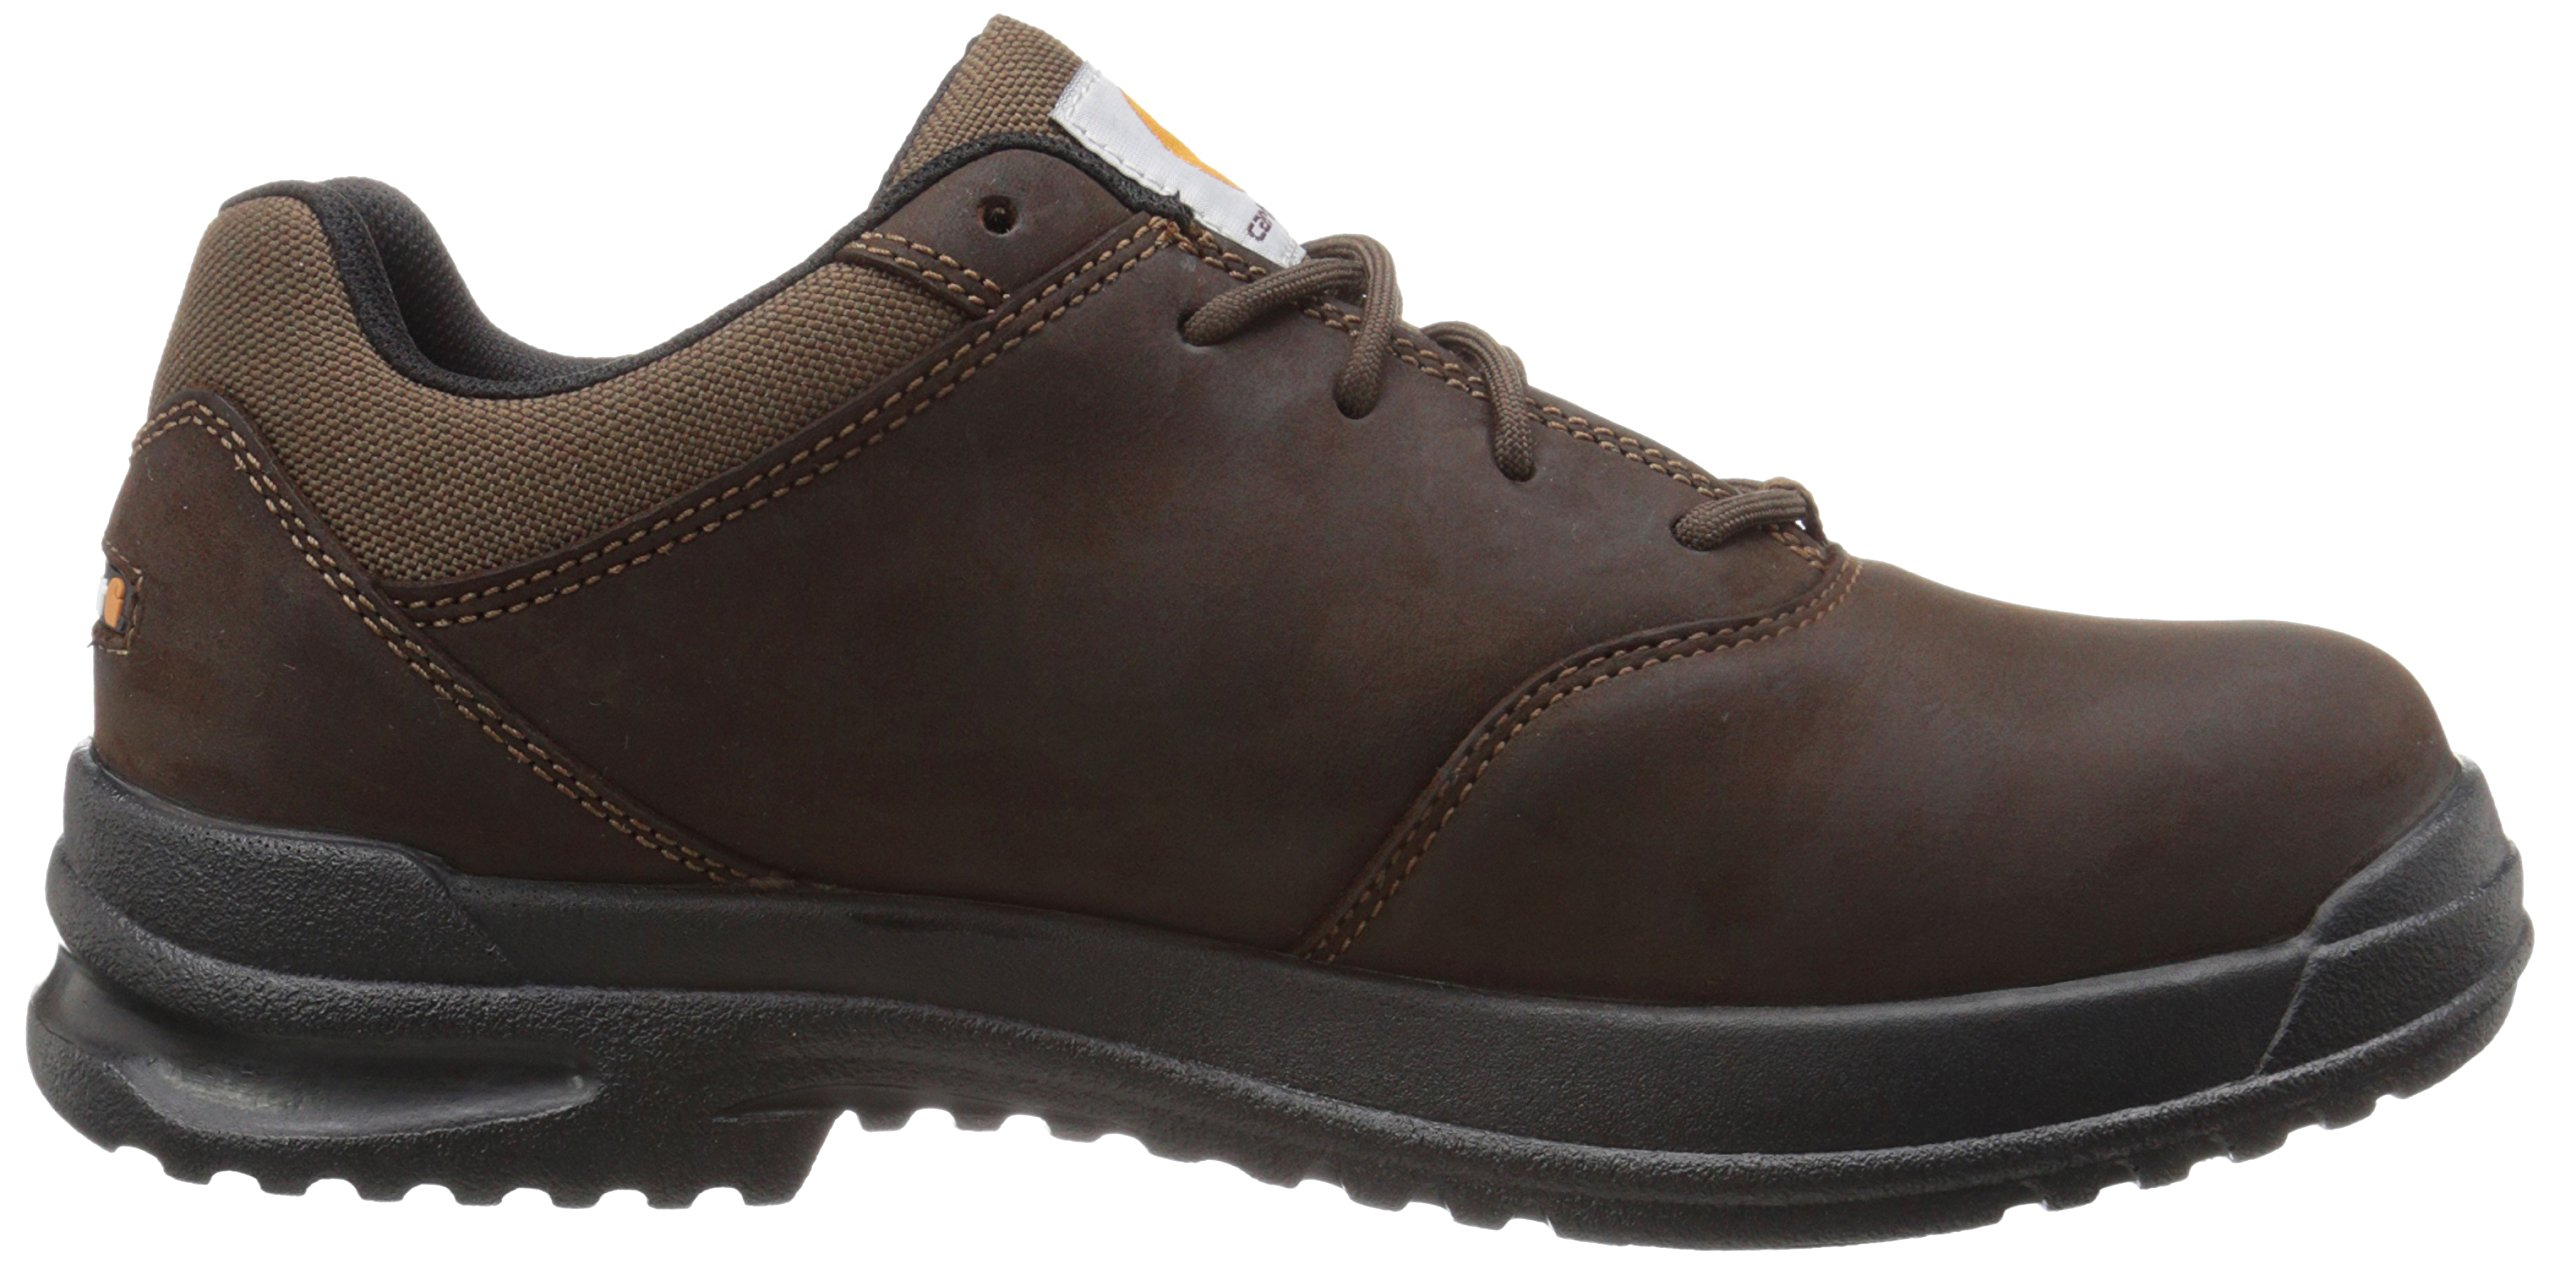 Carhartt Men's CMO3040 Walking Oxford,Dark Brown, 13 M US by Carhartt (Image #7)